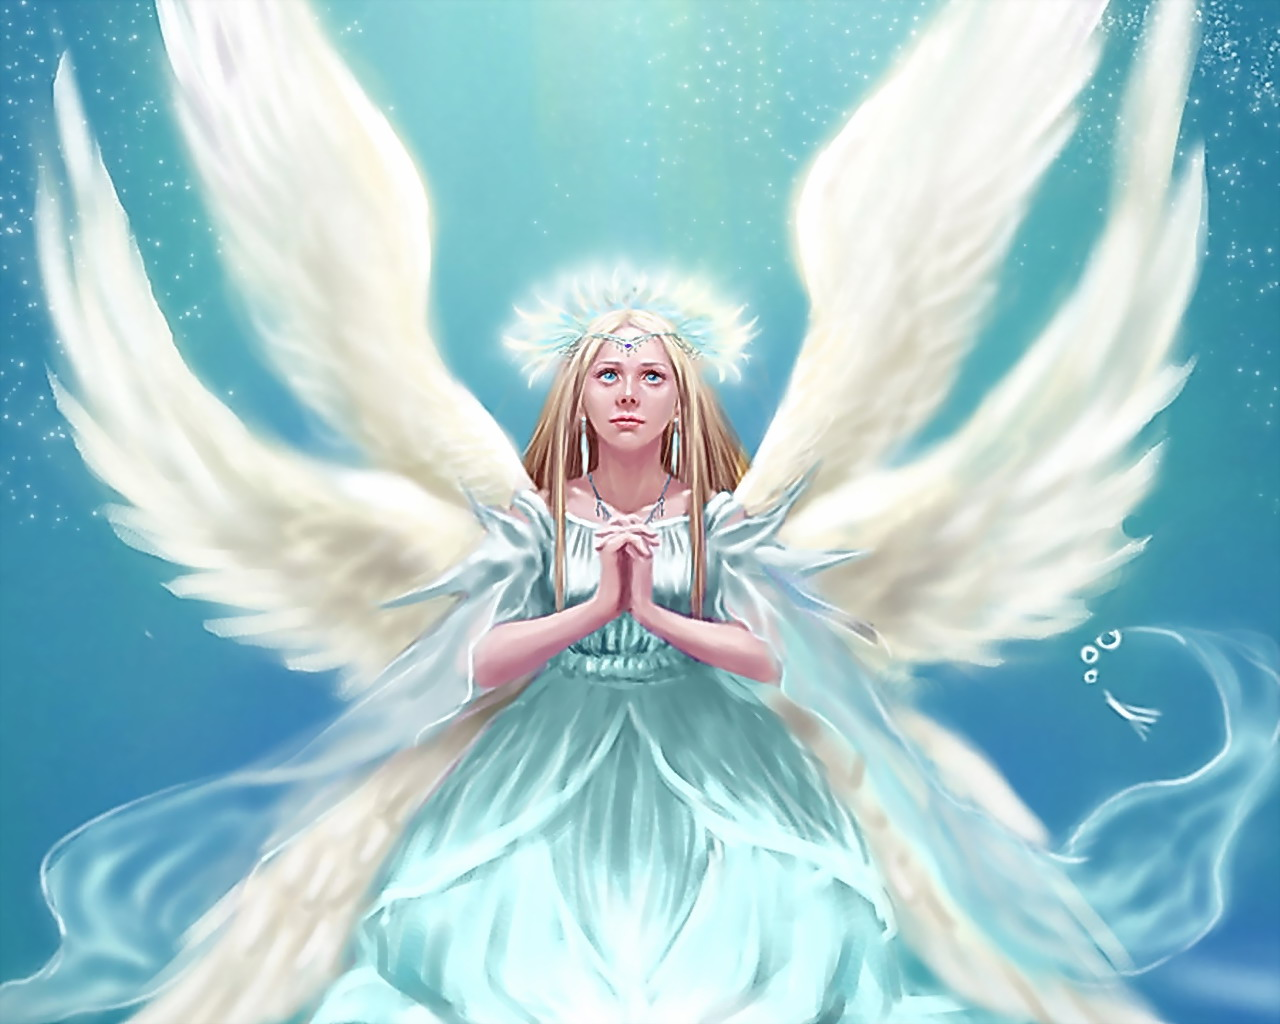 wallpapers world: animated angel wallpapers for desktop